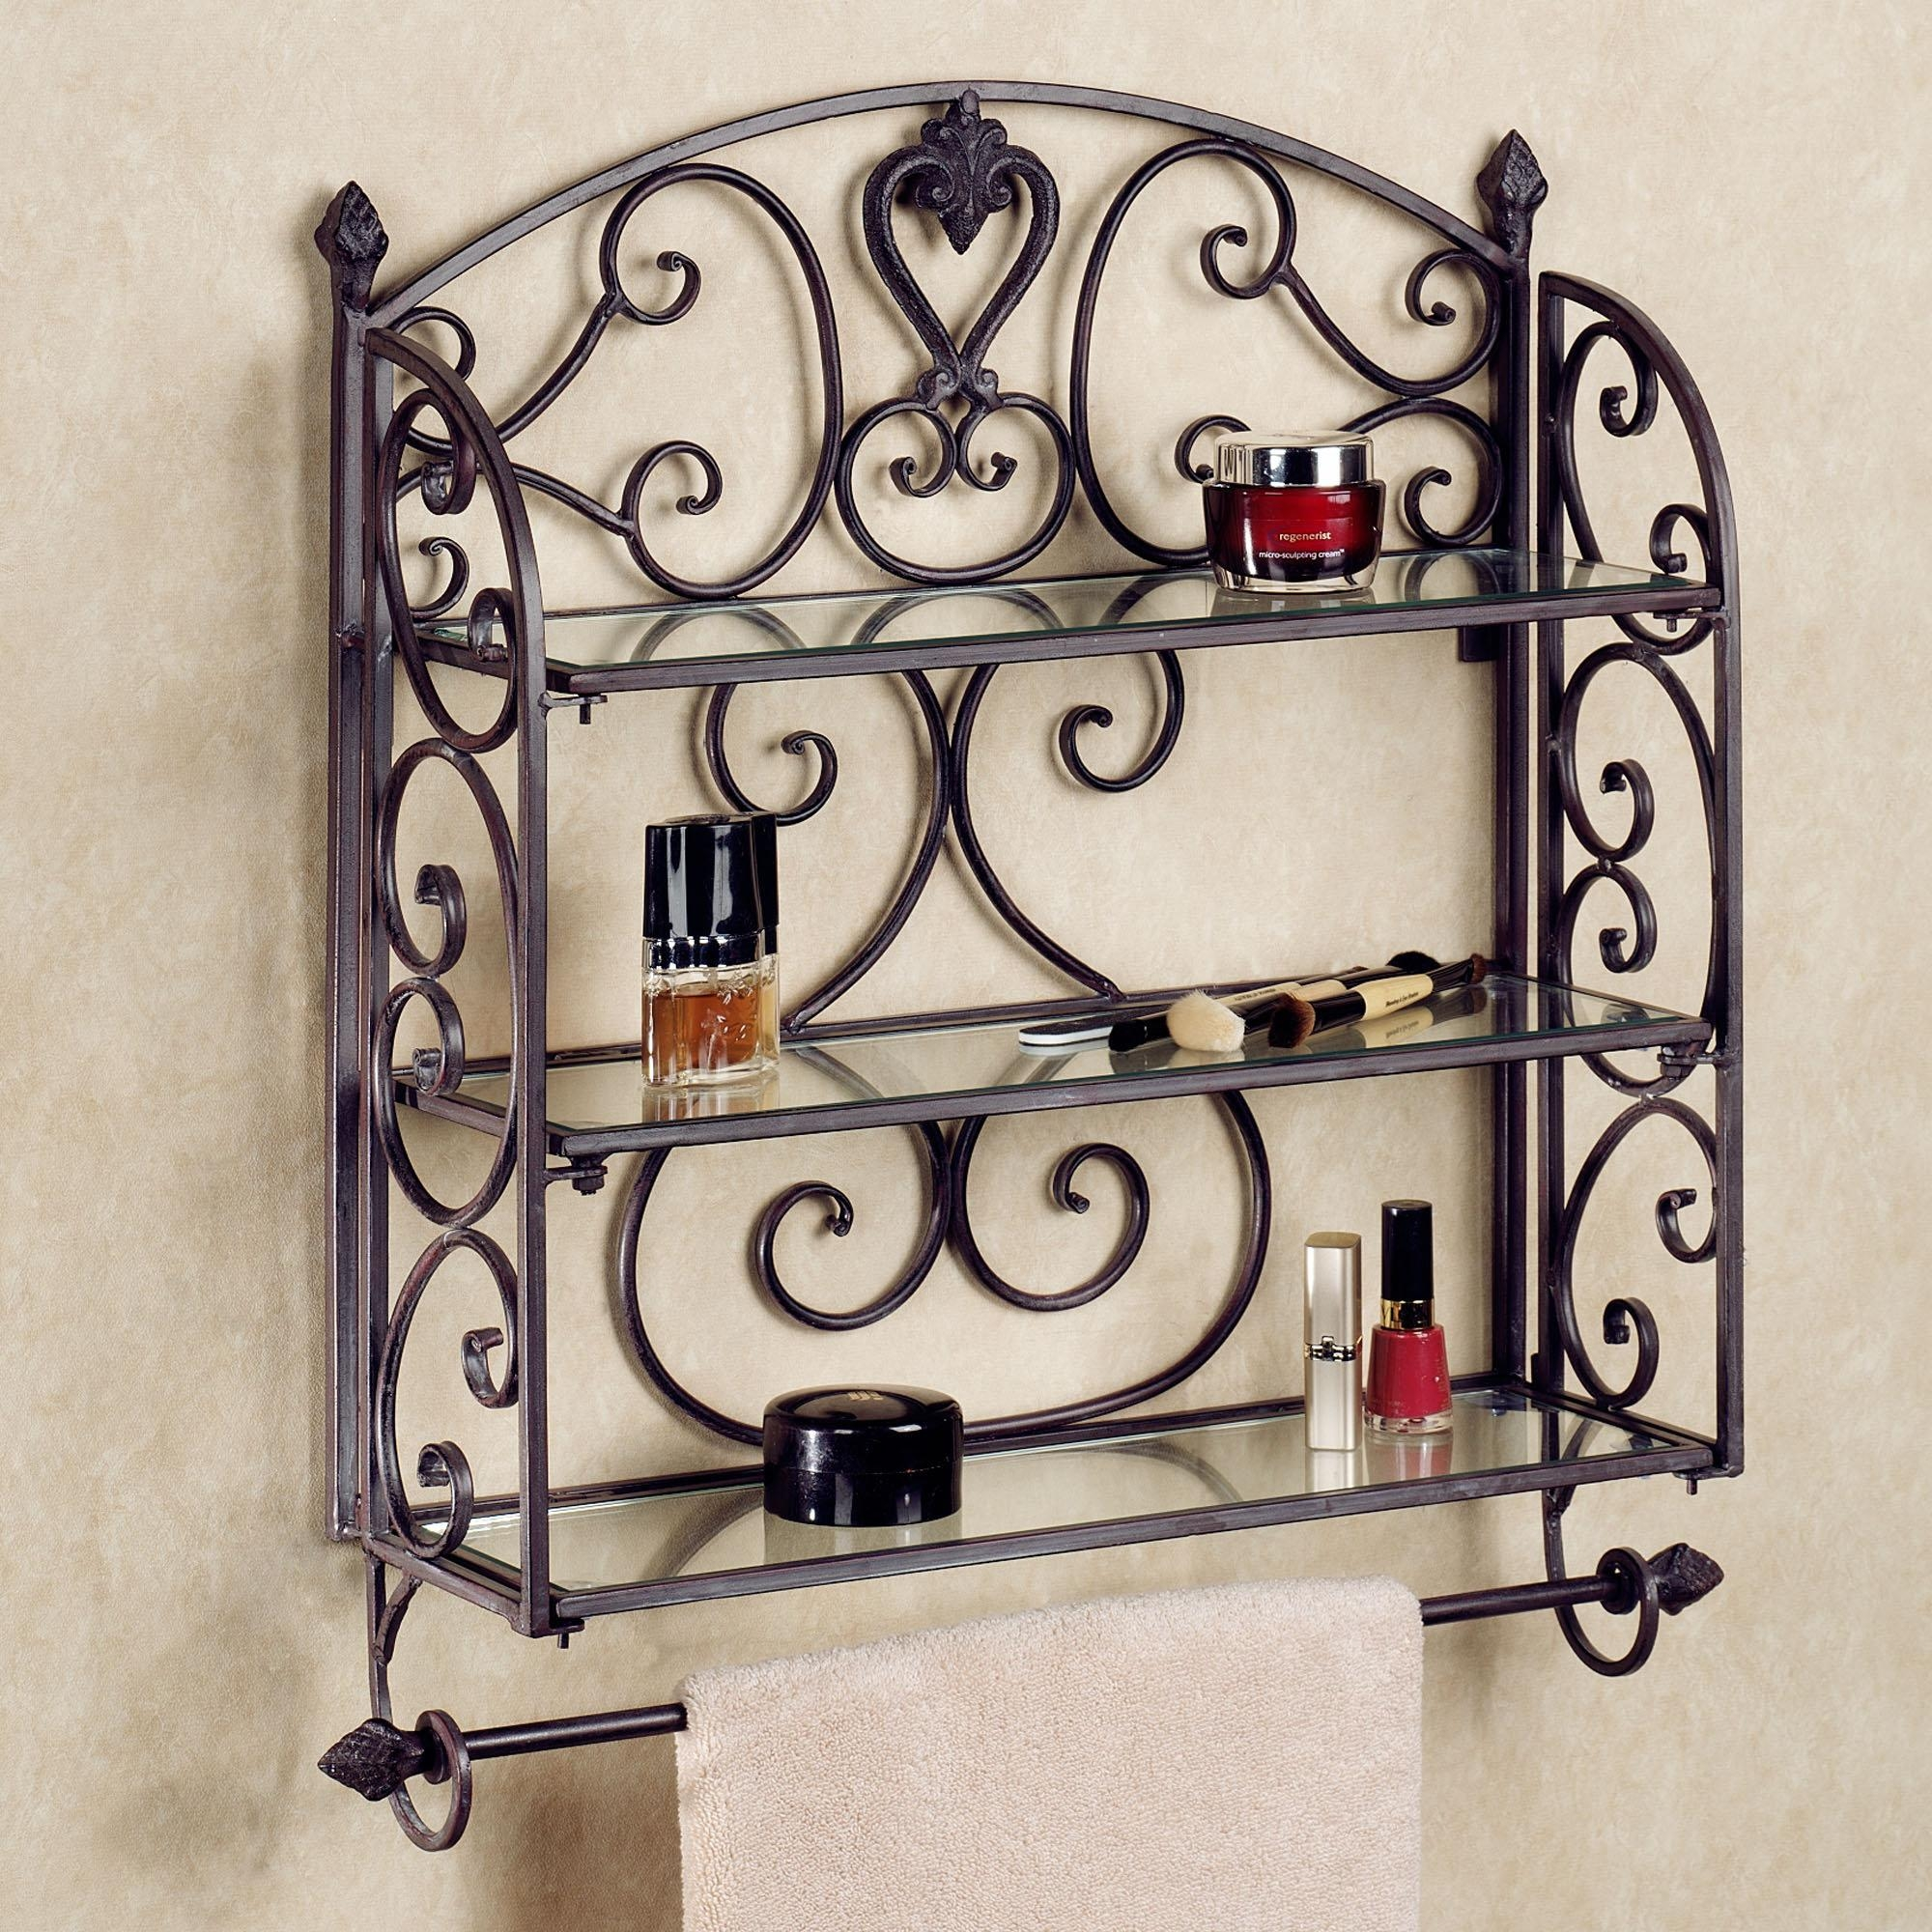 Black Iron Aldabella Tuscany Slate Wall Shelf Towel Bar On White Within Wrought Iron Bathroom Mirrors (Image 9 of 20)